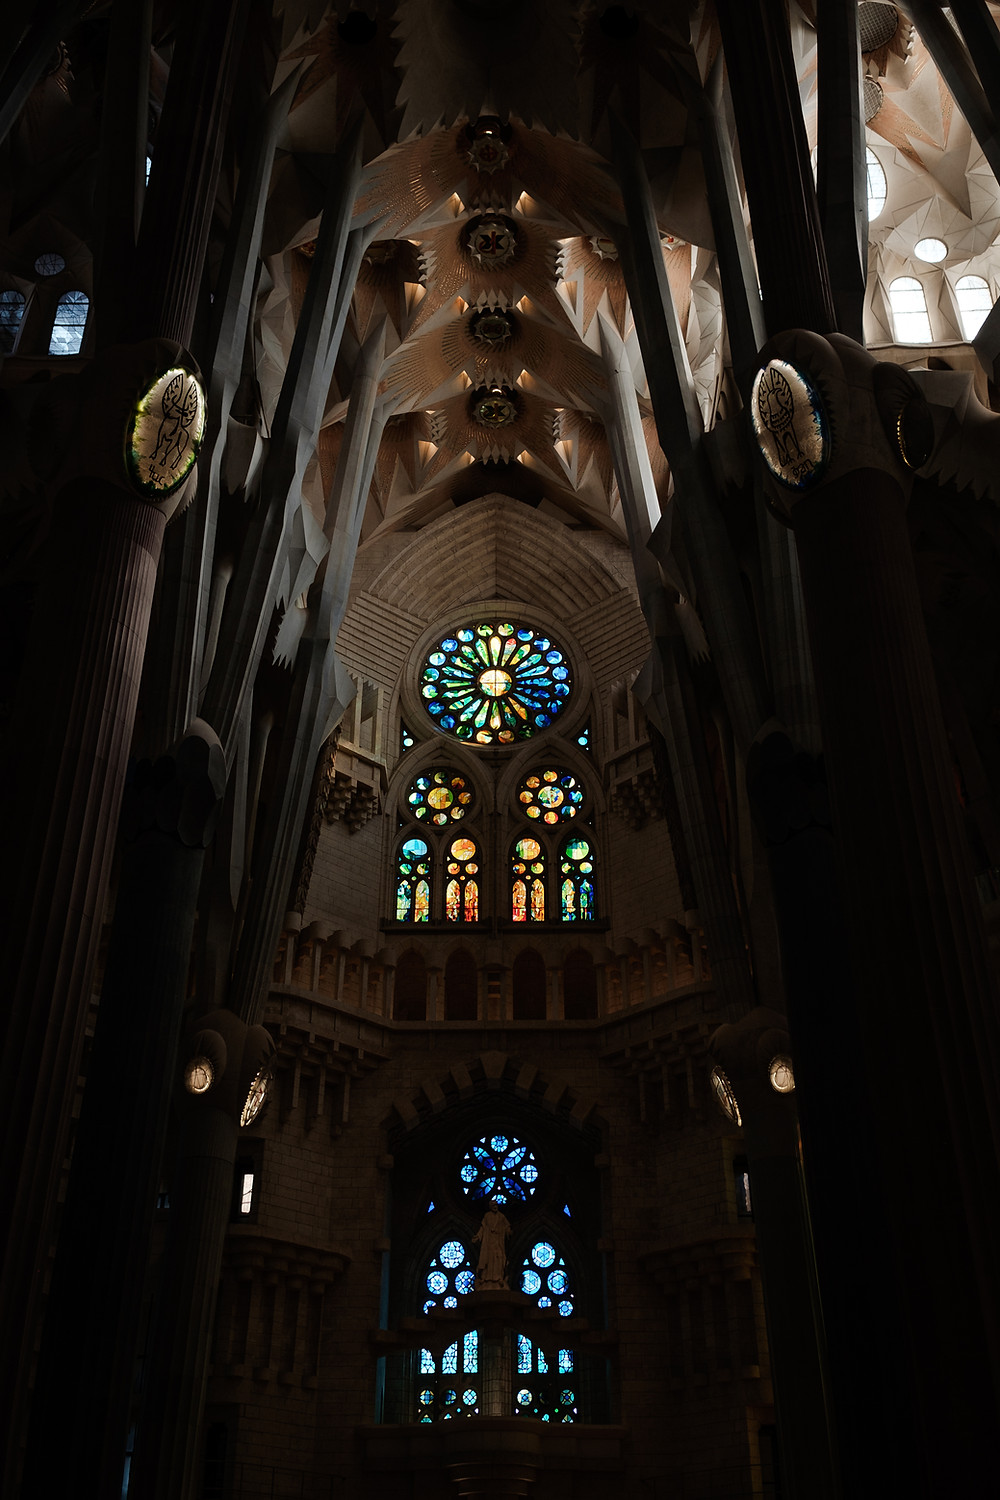 Inside Barcelona cathedral with stained glass windows. Photographed by Nicole Leanne Photography.